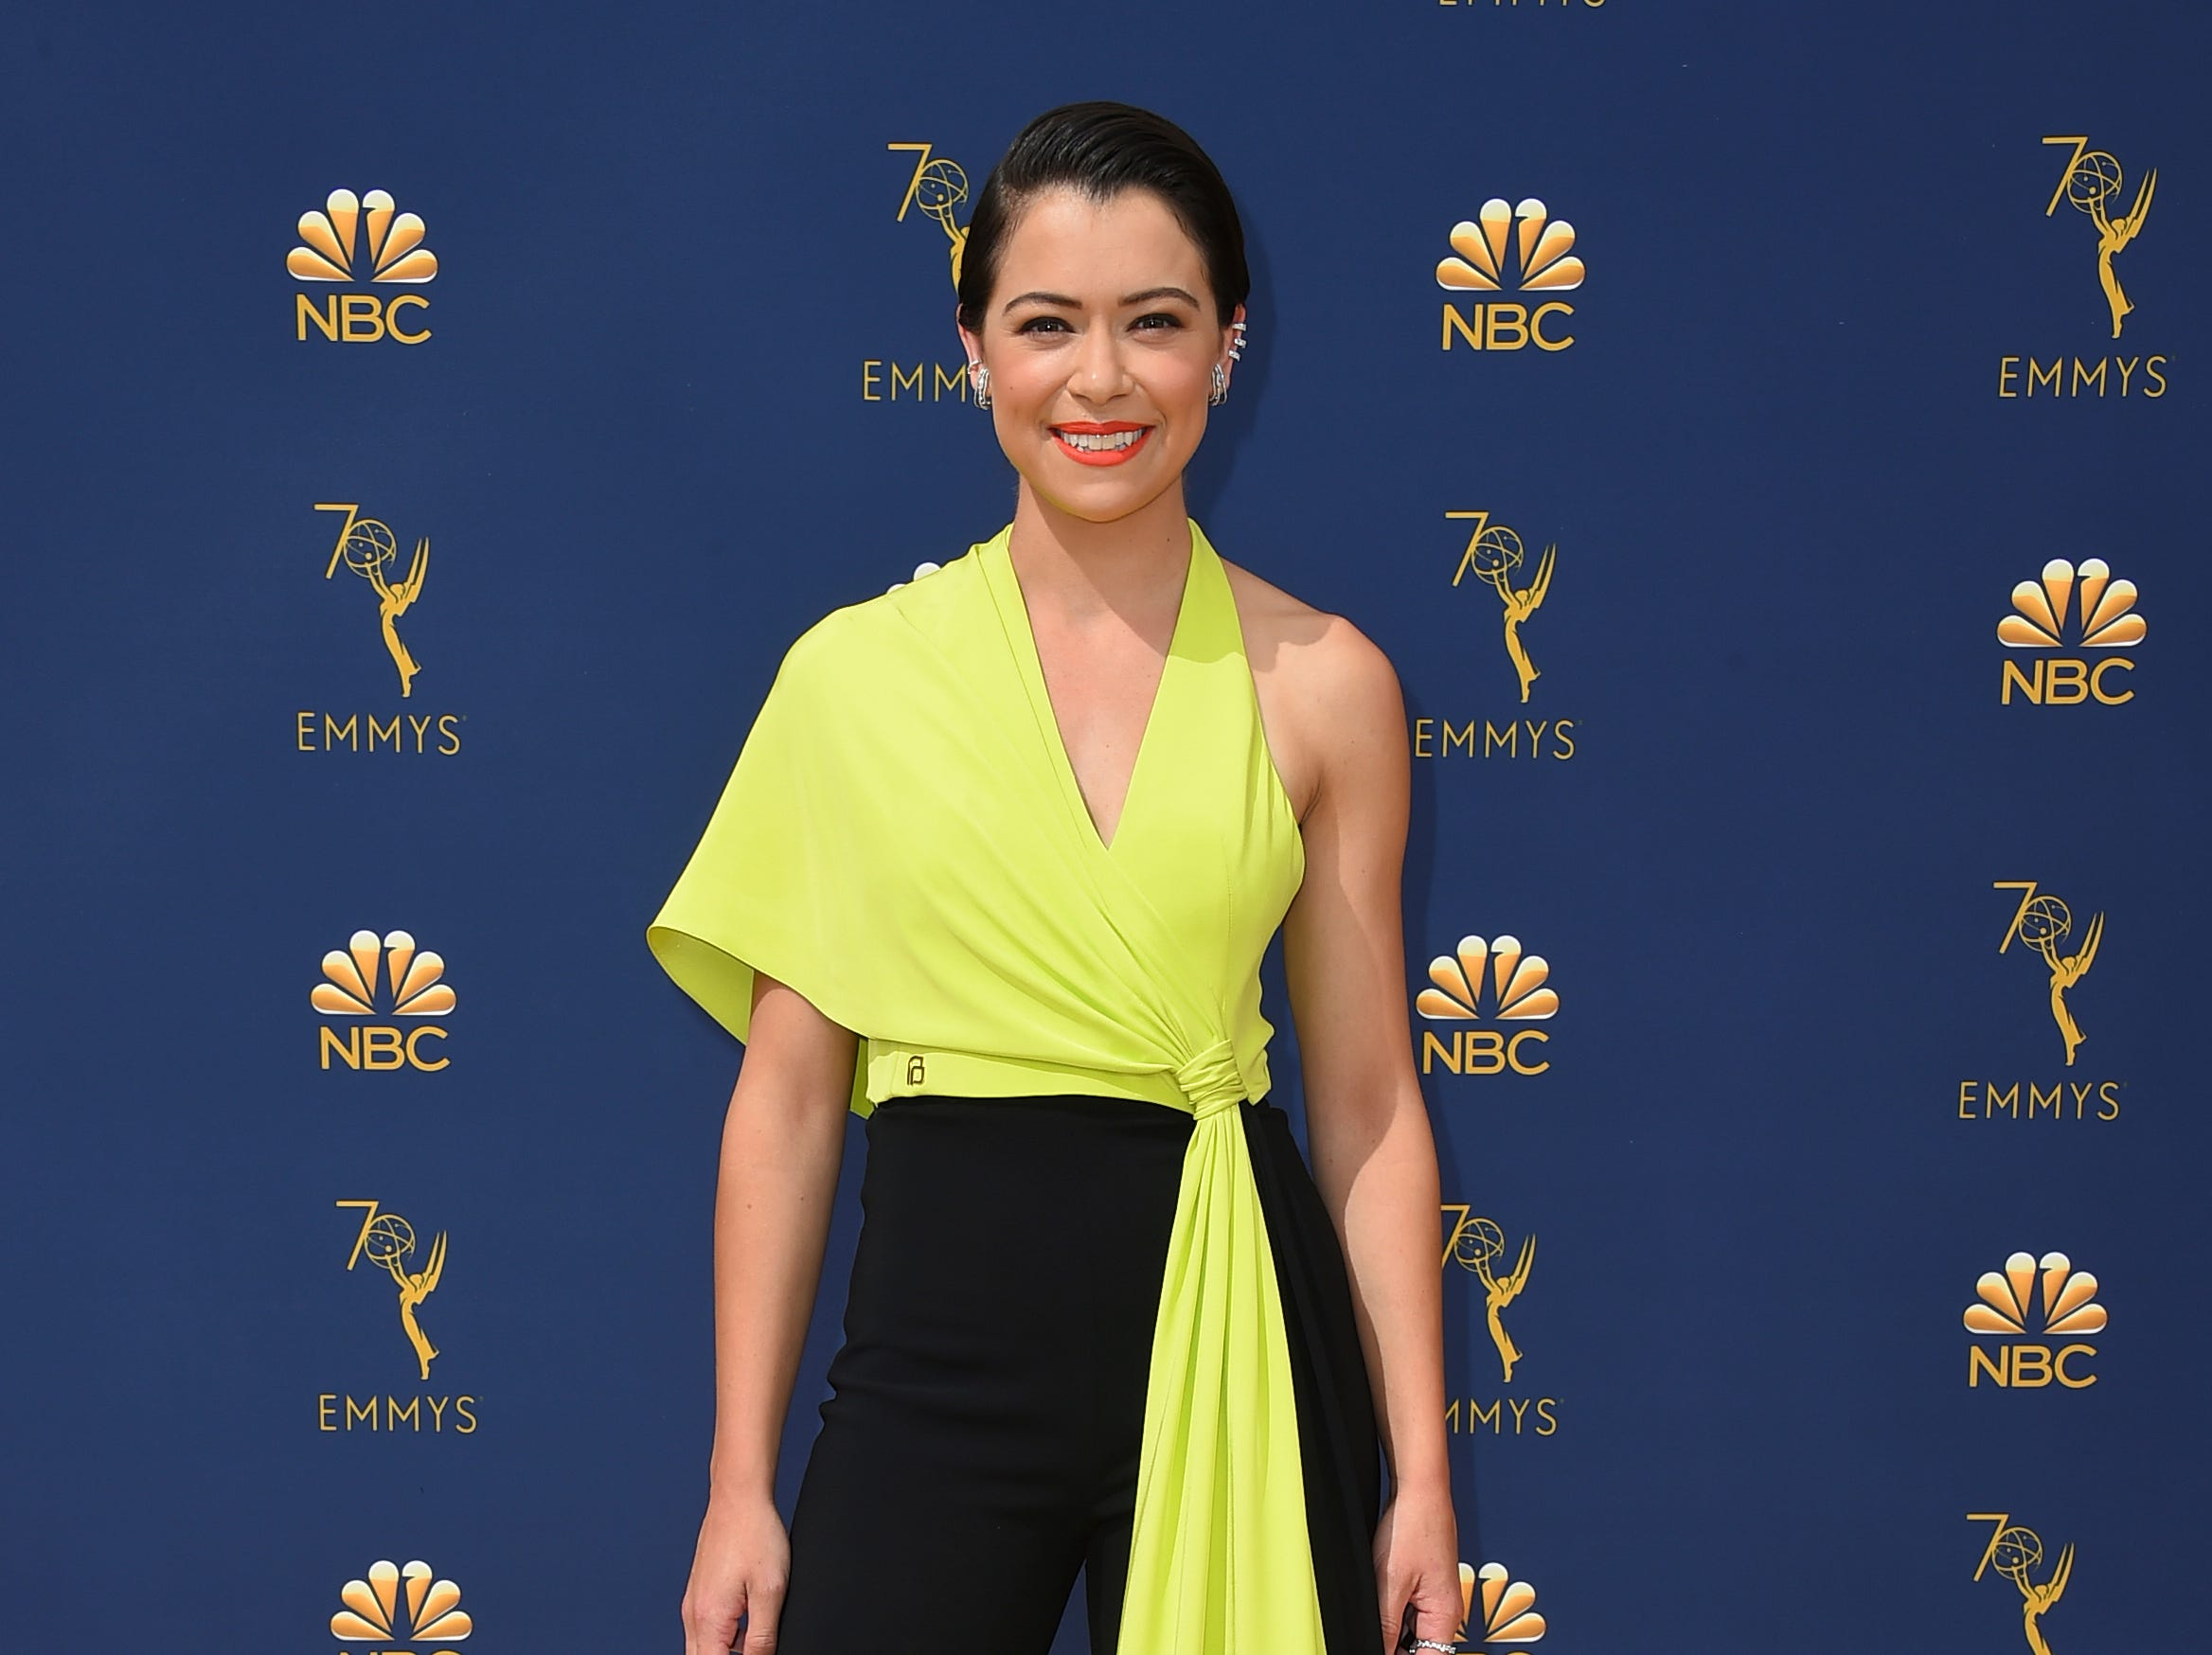 Tatiana Maslany arrives at the 70th Primetime Emmy Awards on Monday, Sept. 17, 2018, at the Microsoft Theater in Los Angeles.